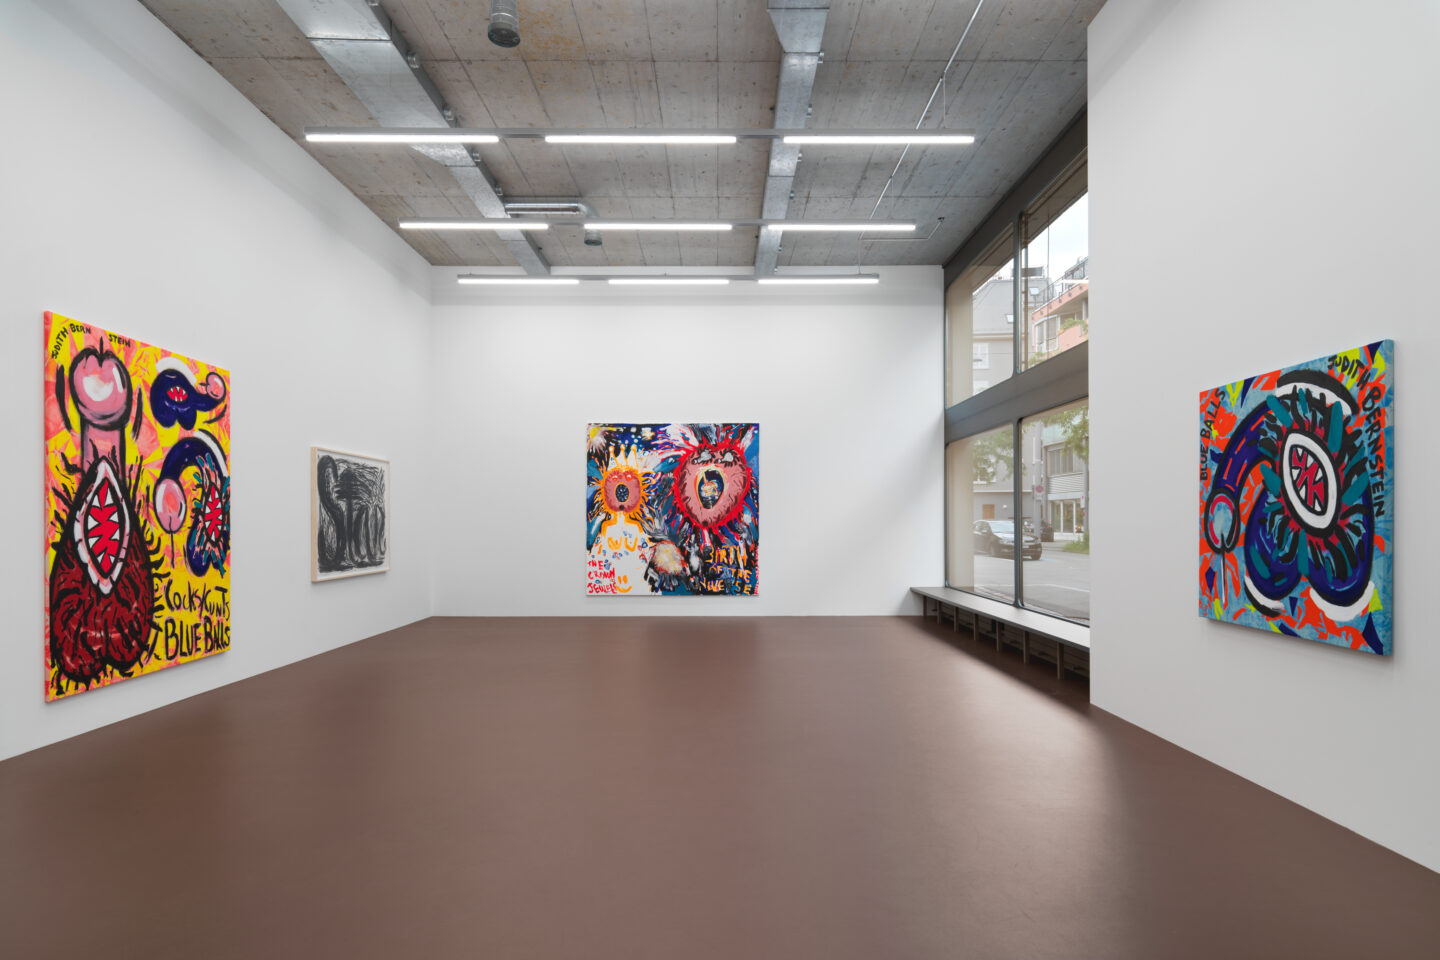 Exhibition View Judith Bernstein Soloshow «Blue Balls» at Karma International, Zurich, 2019 / Photo: Stefan Alternburger / Courtesy: the artist and Karma International